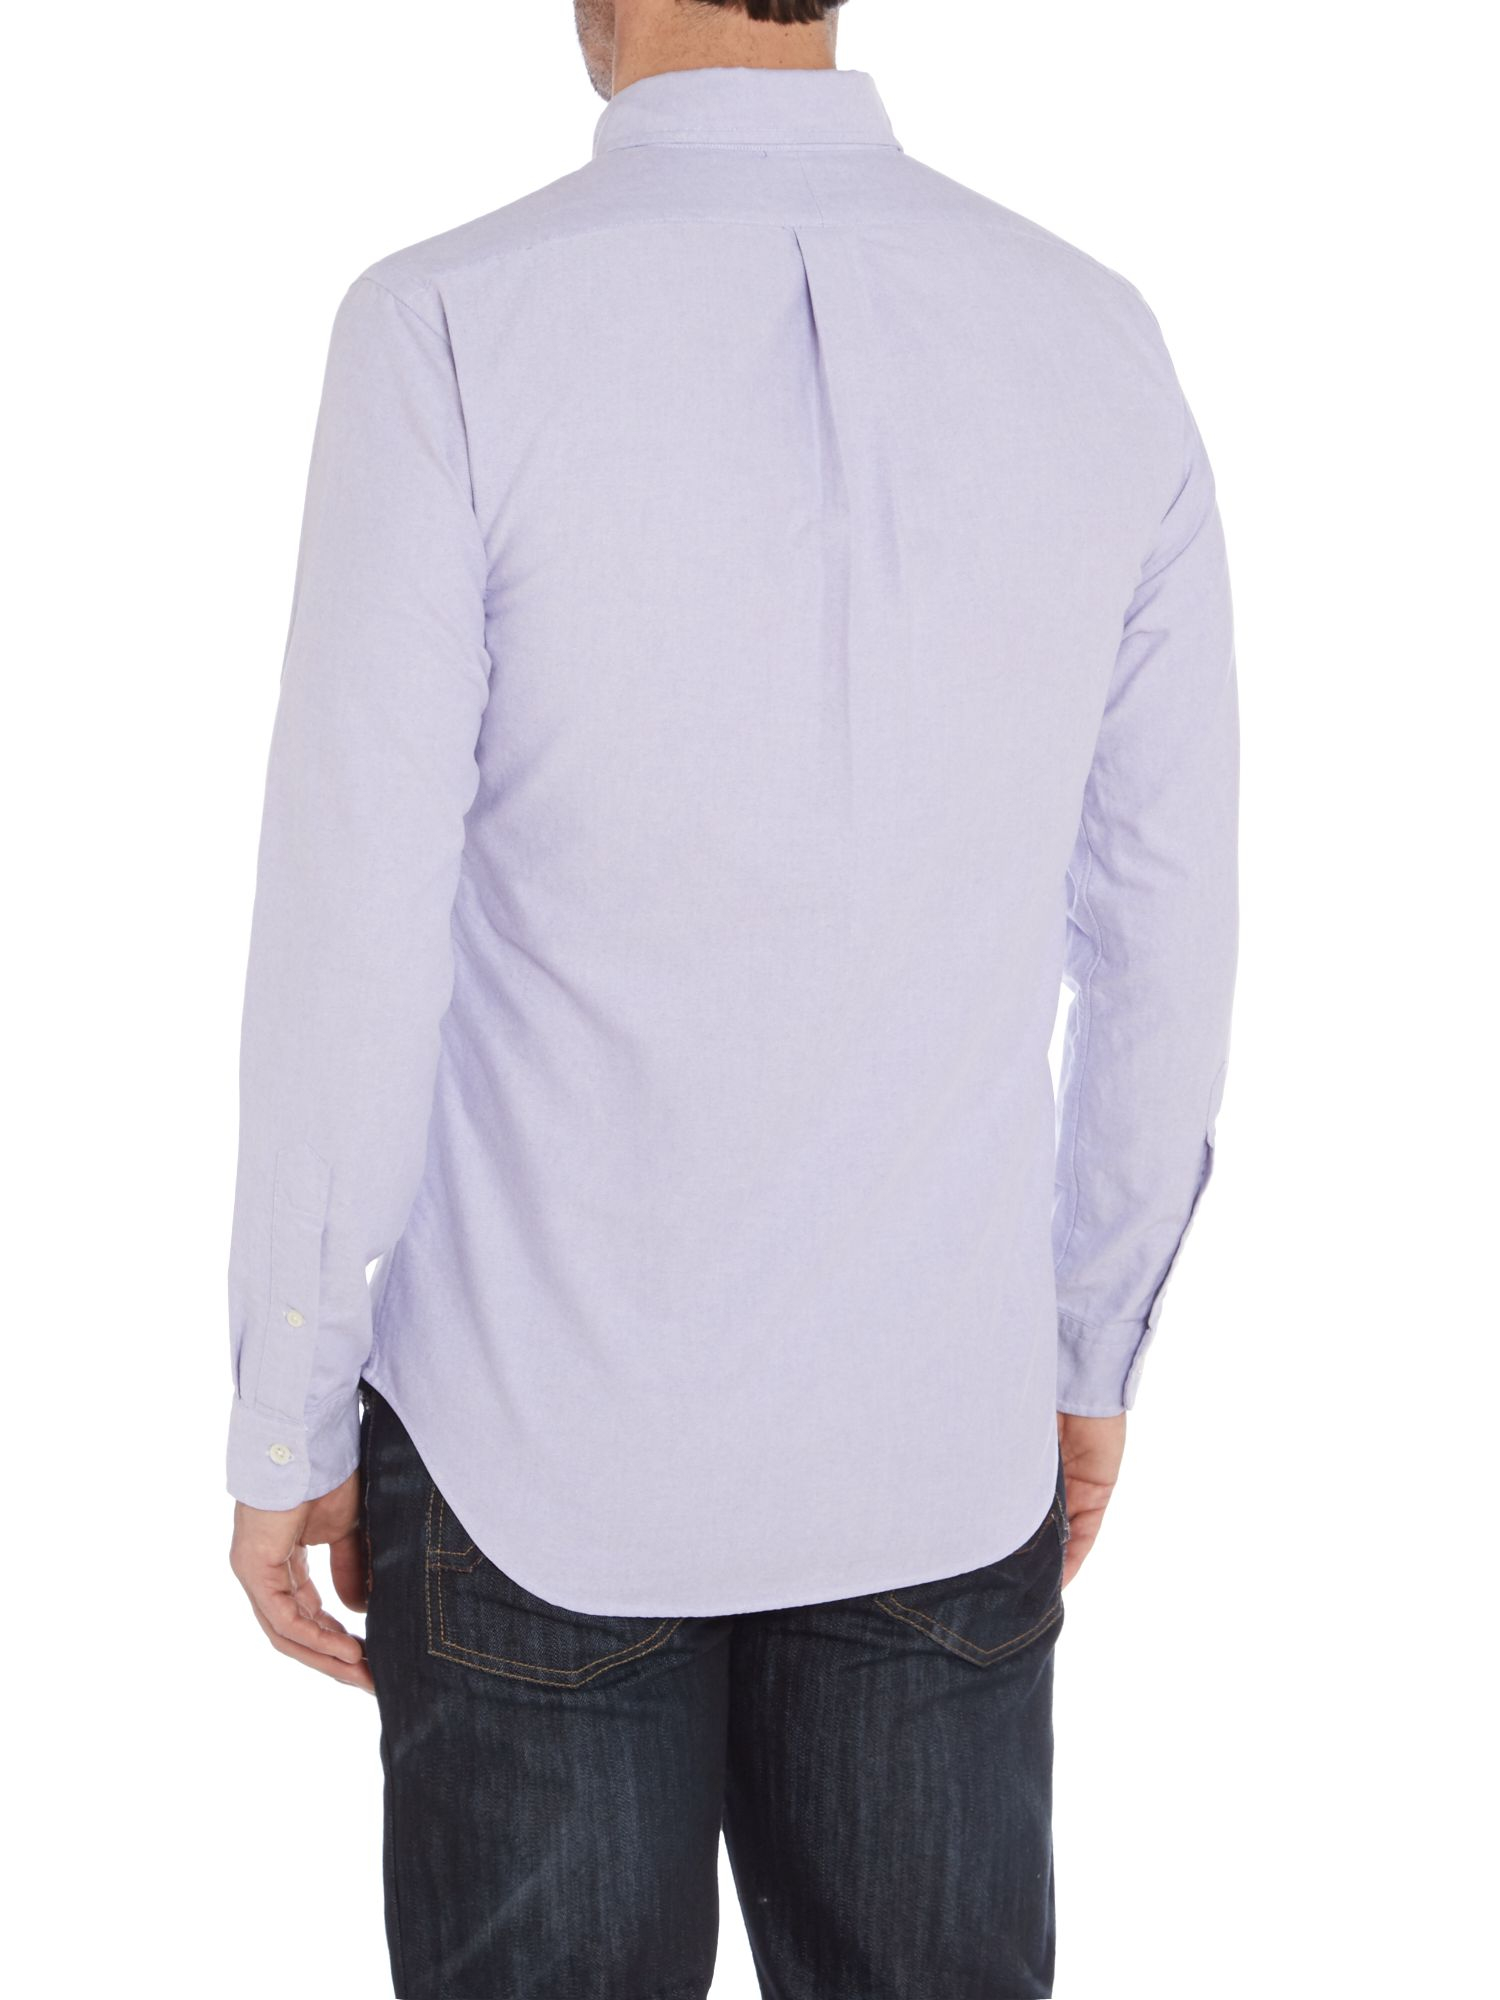 Polo ralph lauren classic slim fit long sleeve shirt in for Long sleeve purple polo shirt